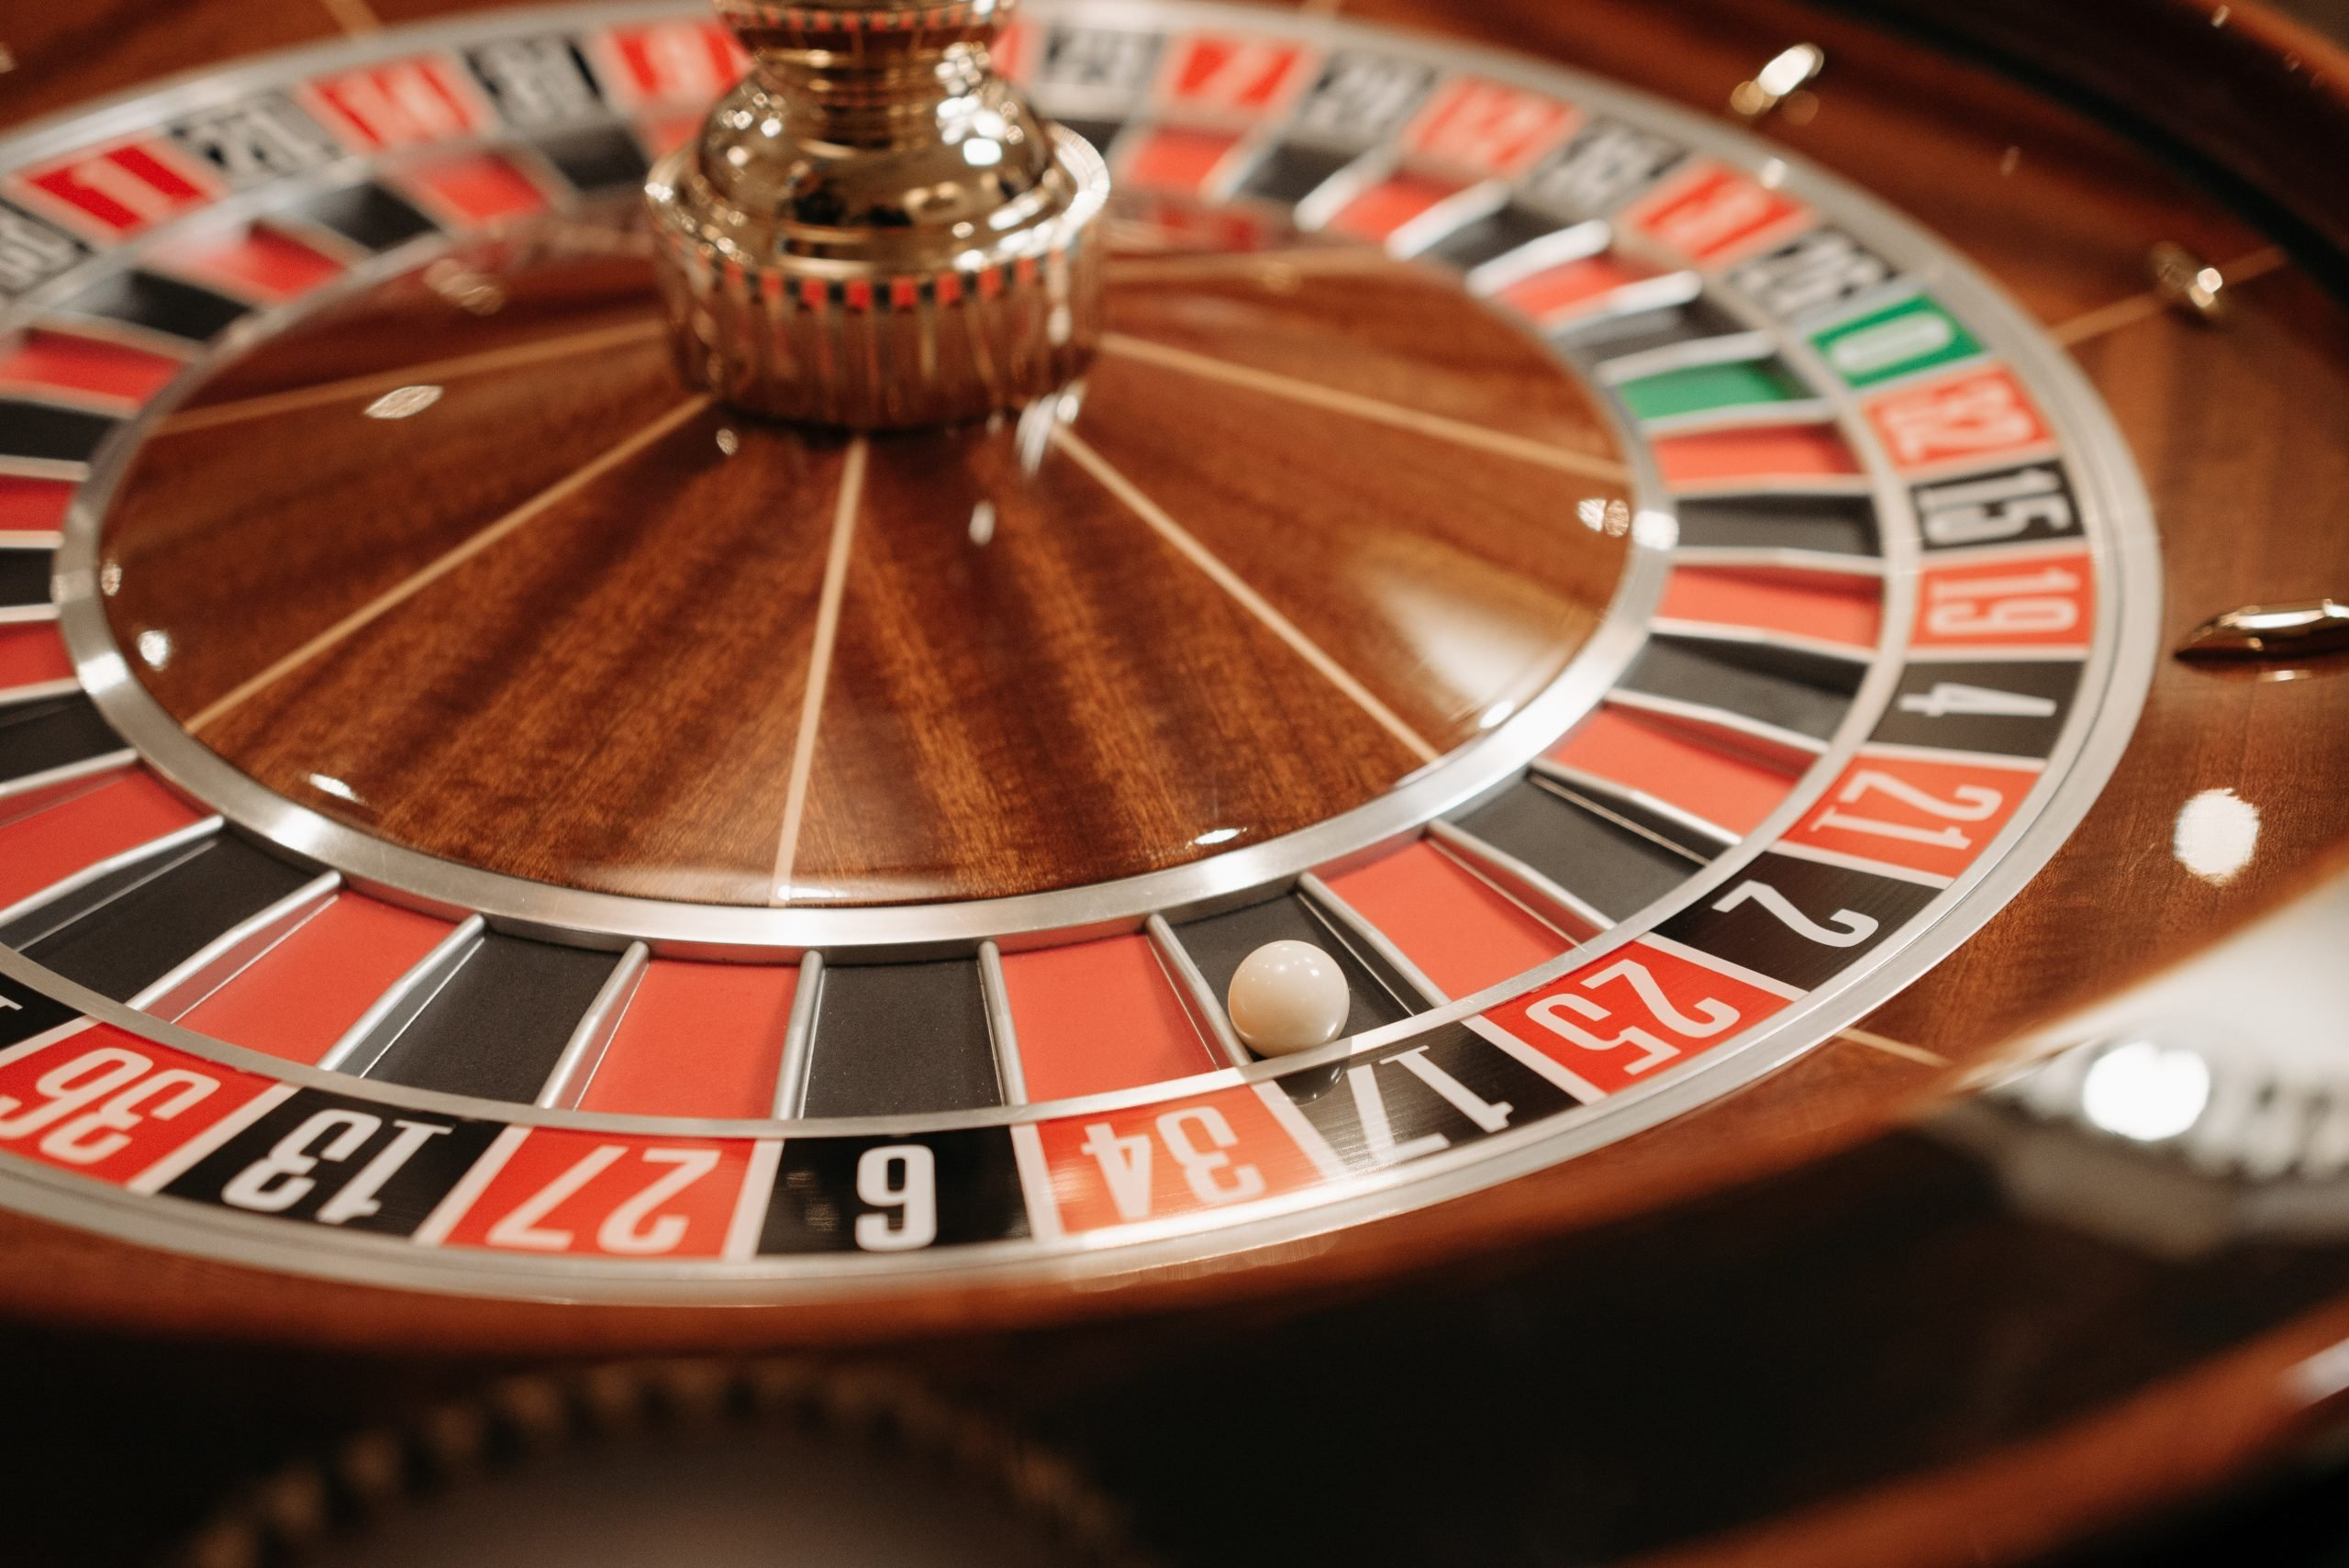 Cheating Casinos for Millions: Casino Table Game Protection- Richard Marcus Interview [VIDEO]